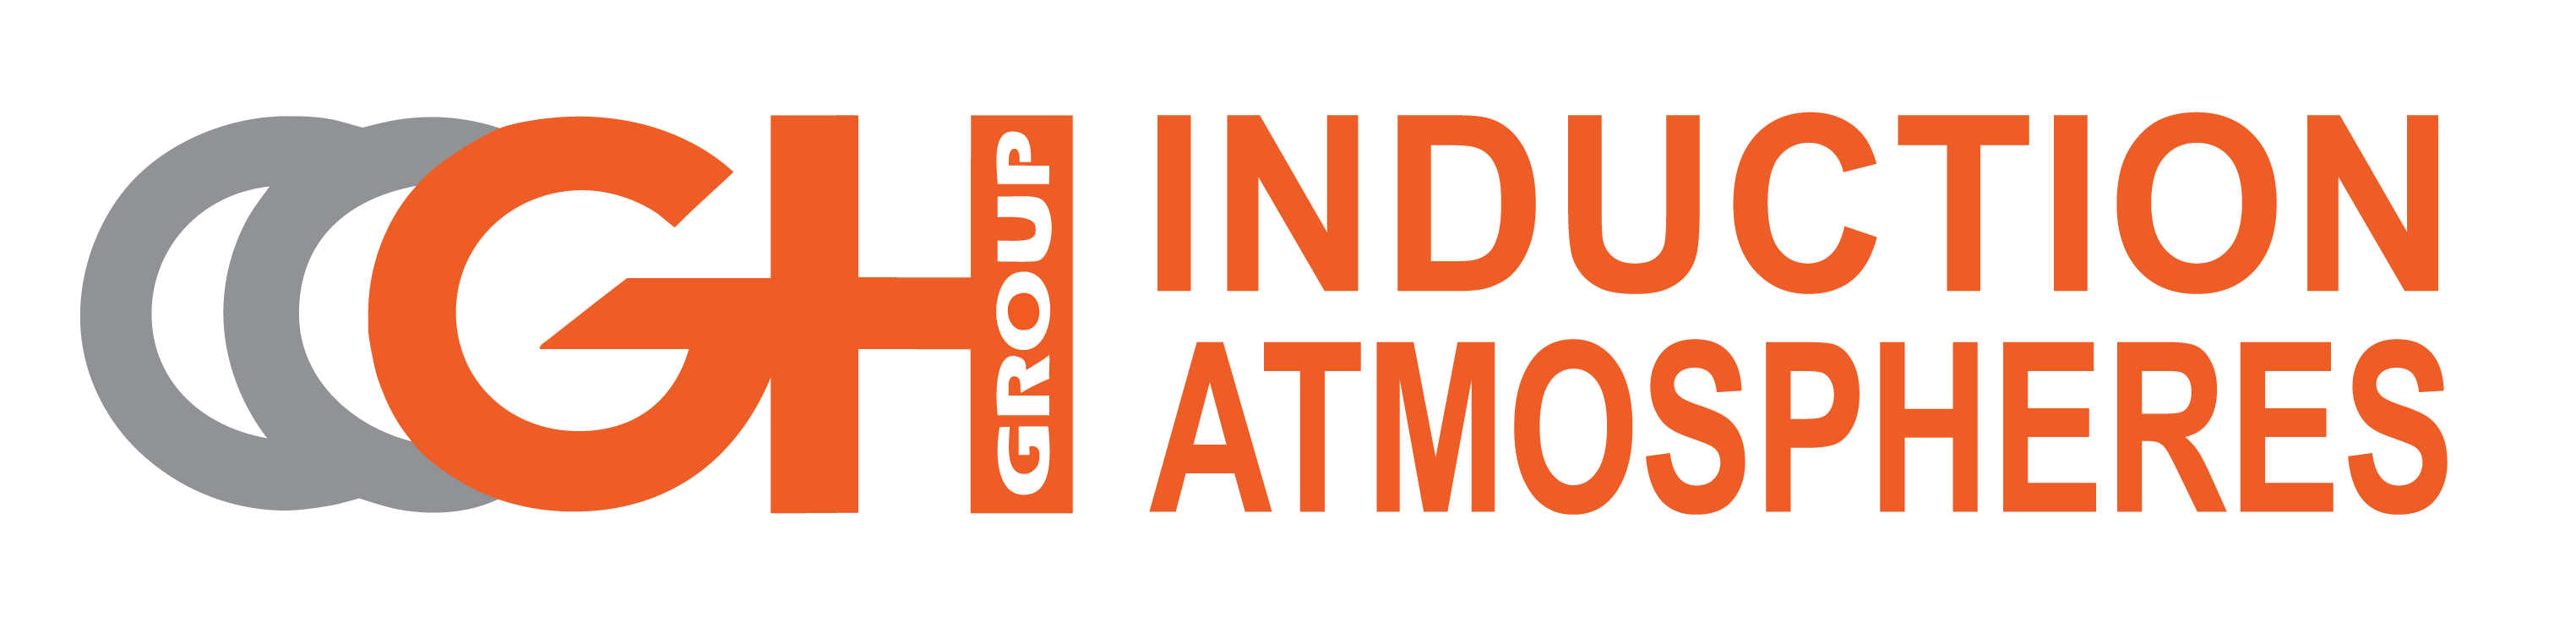 GH Induction Atmospheres will exhibit at the Aerospace Joining Conference 2019